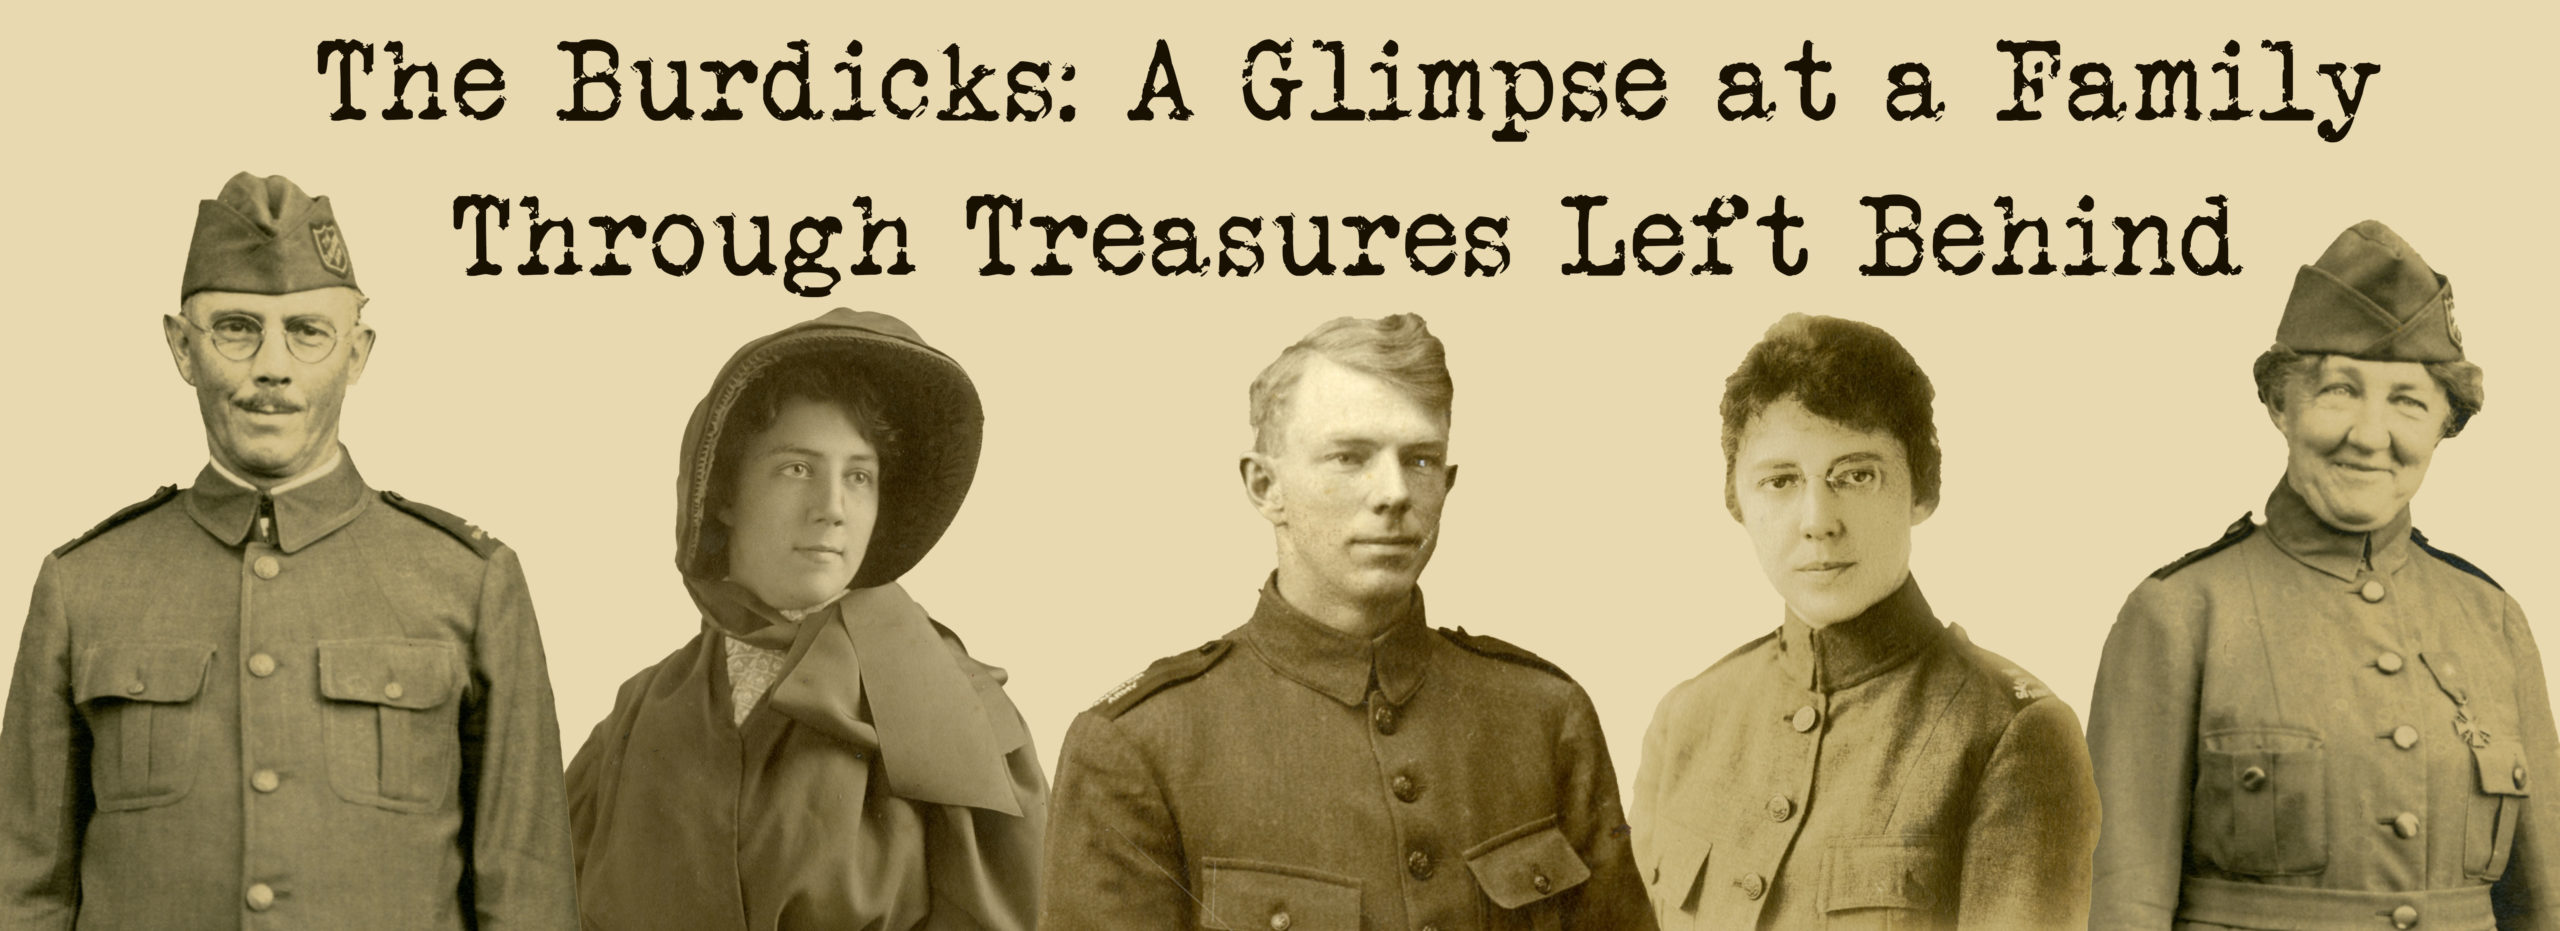 Photo collage featuring all five members of The Burdick Family. Includes text The Burdicks: a Glimpse at a Family Through Treasures Left Behind